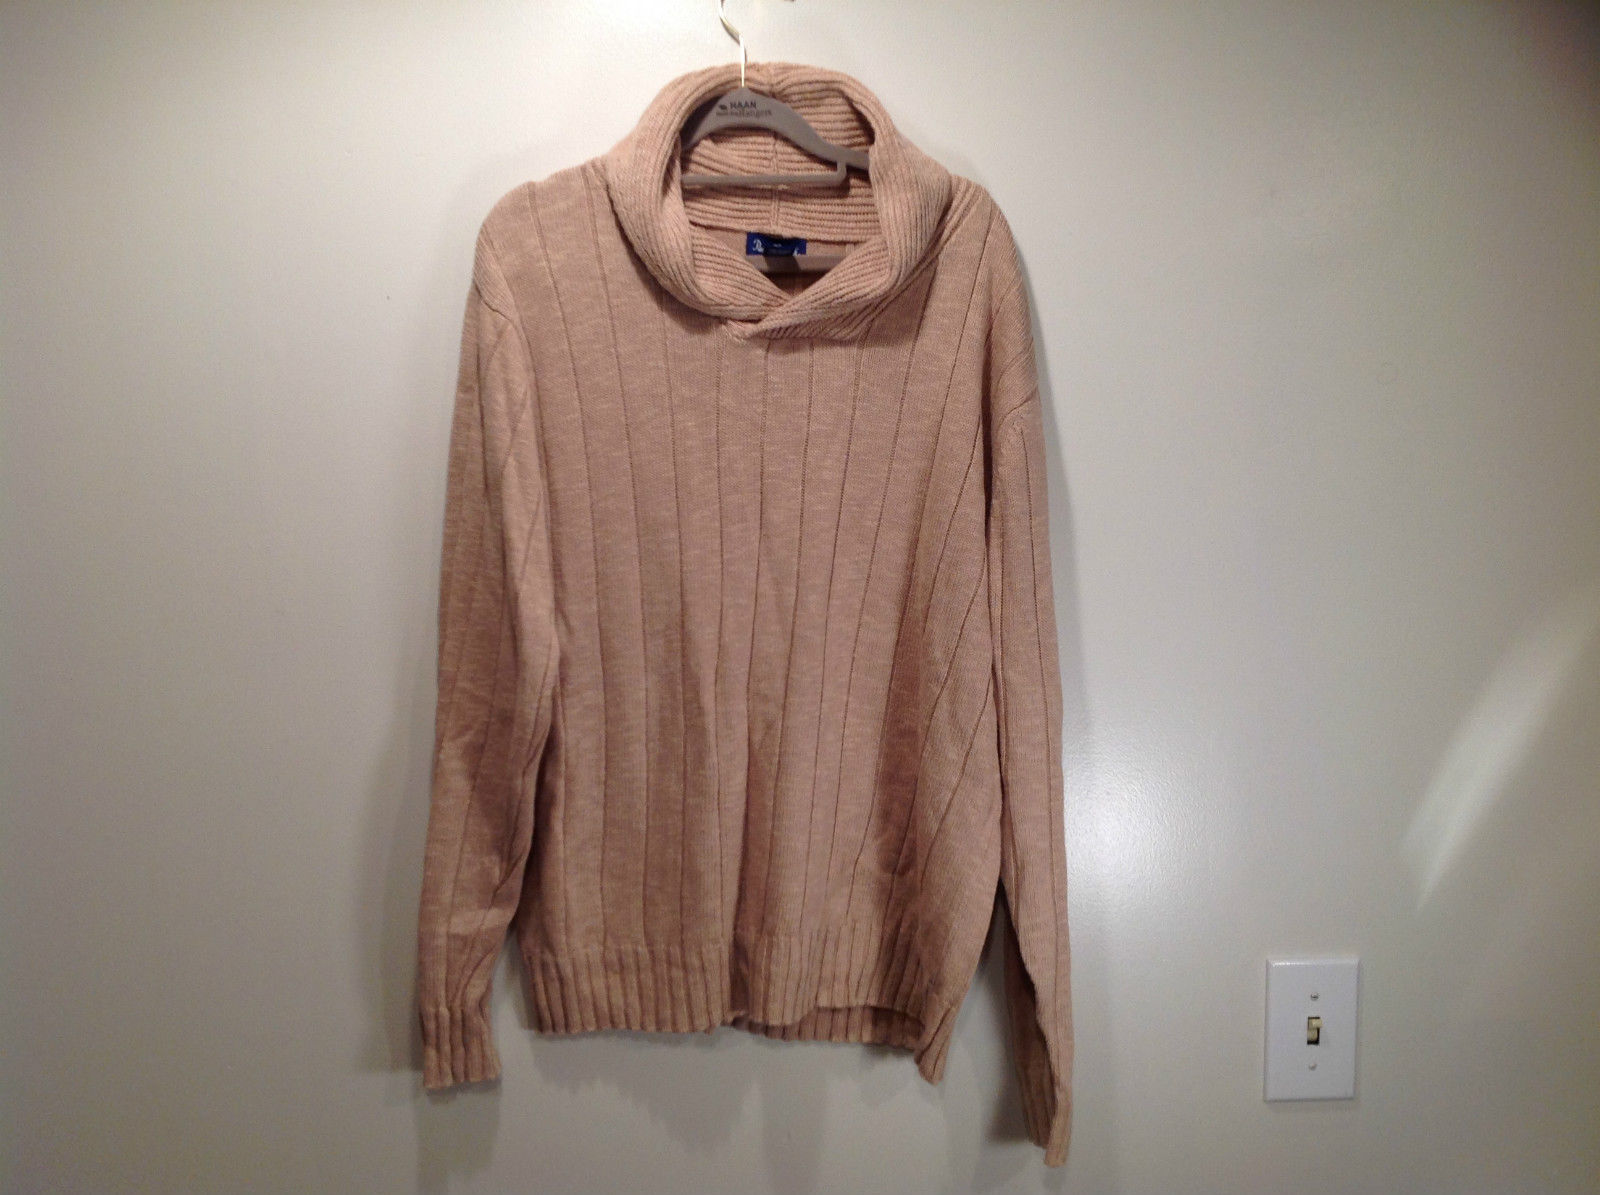 Paul Fredrick Size Medium Big Collar Brown Sweater Excellent Condition